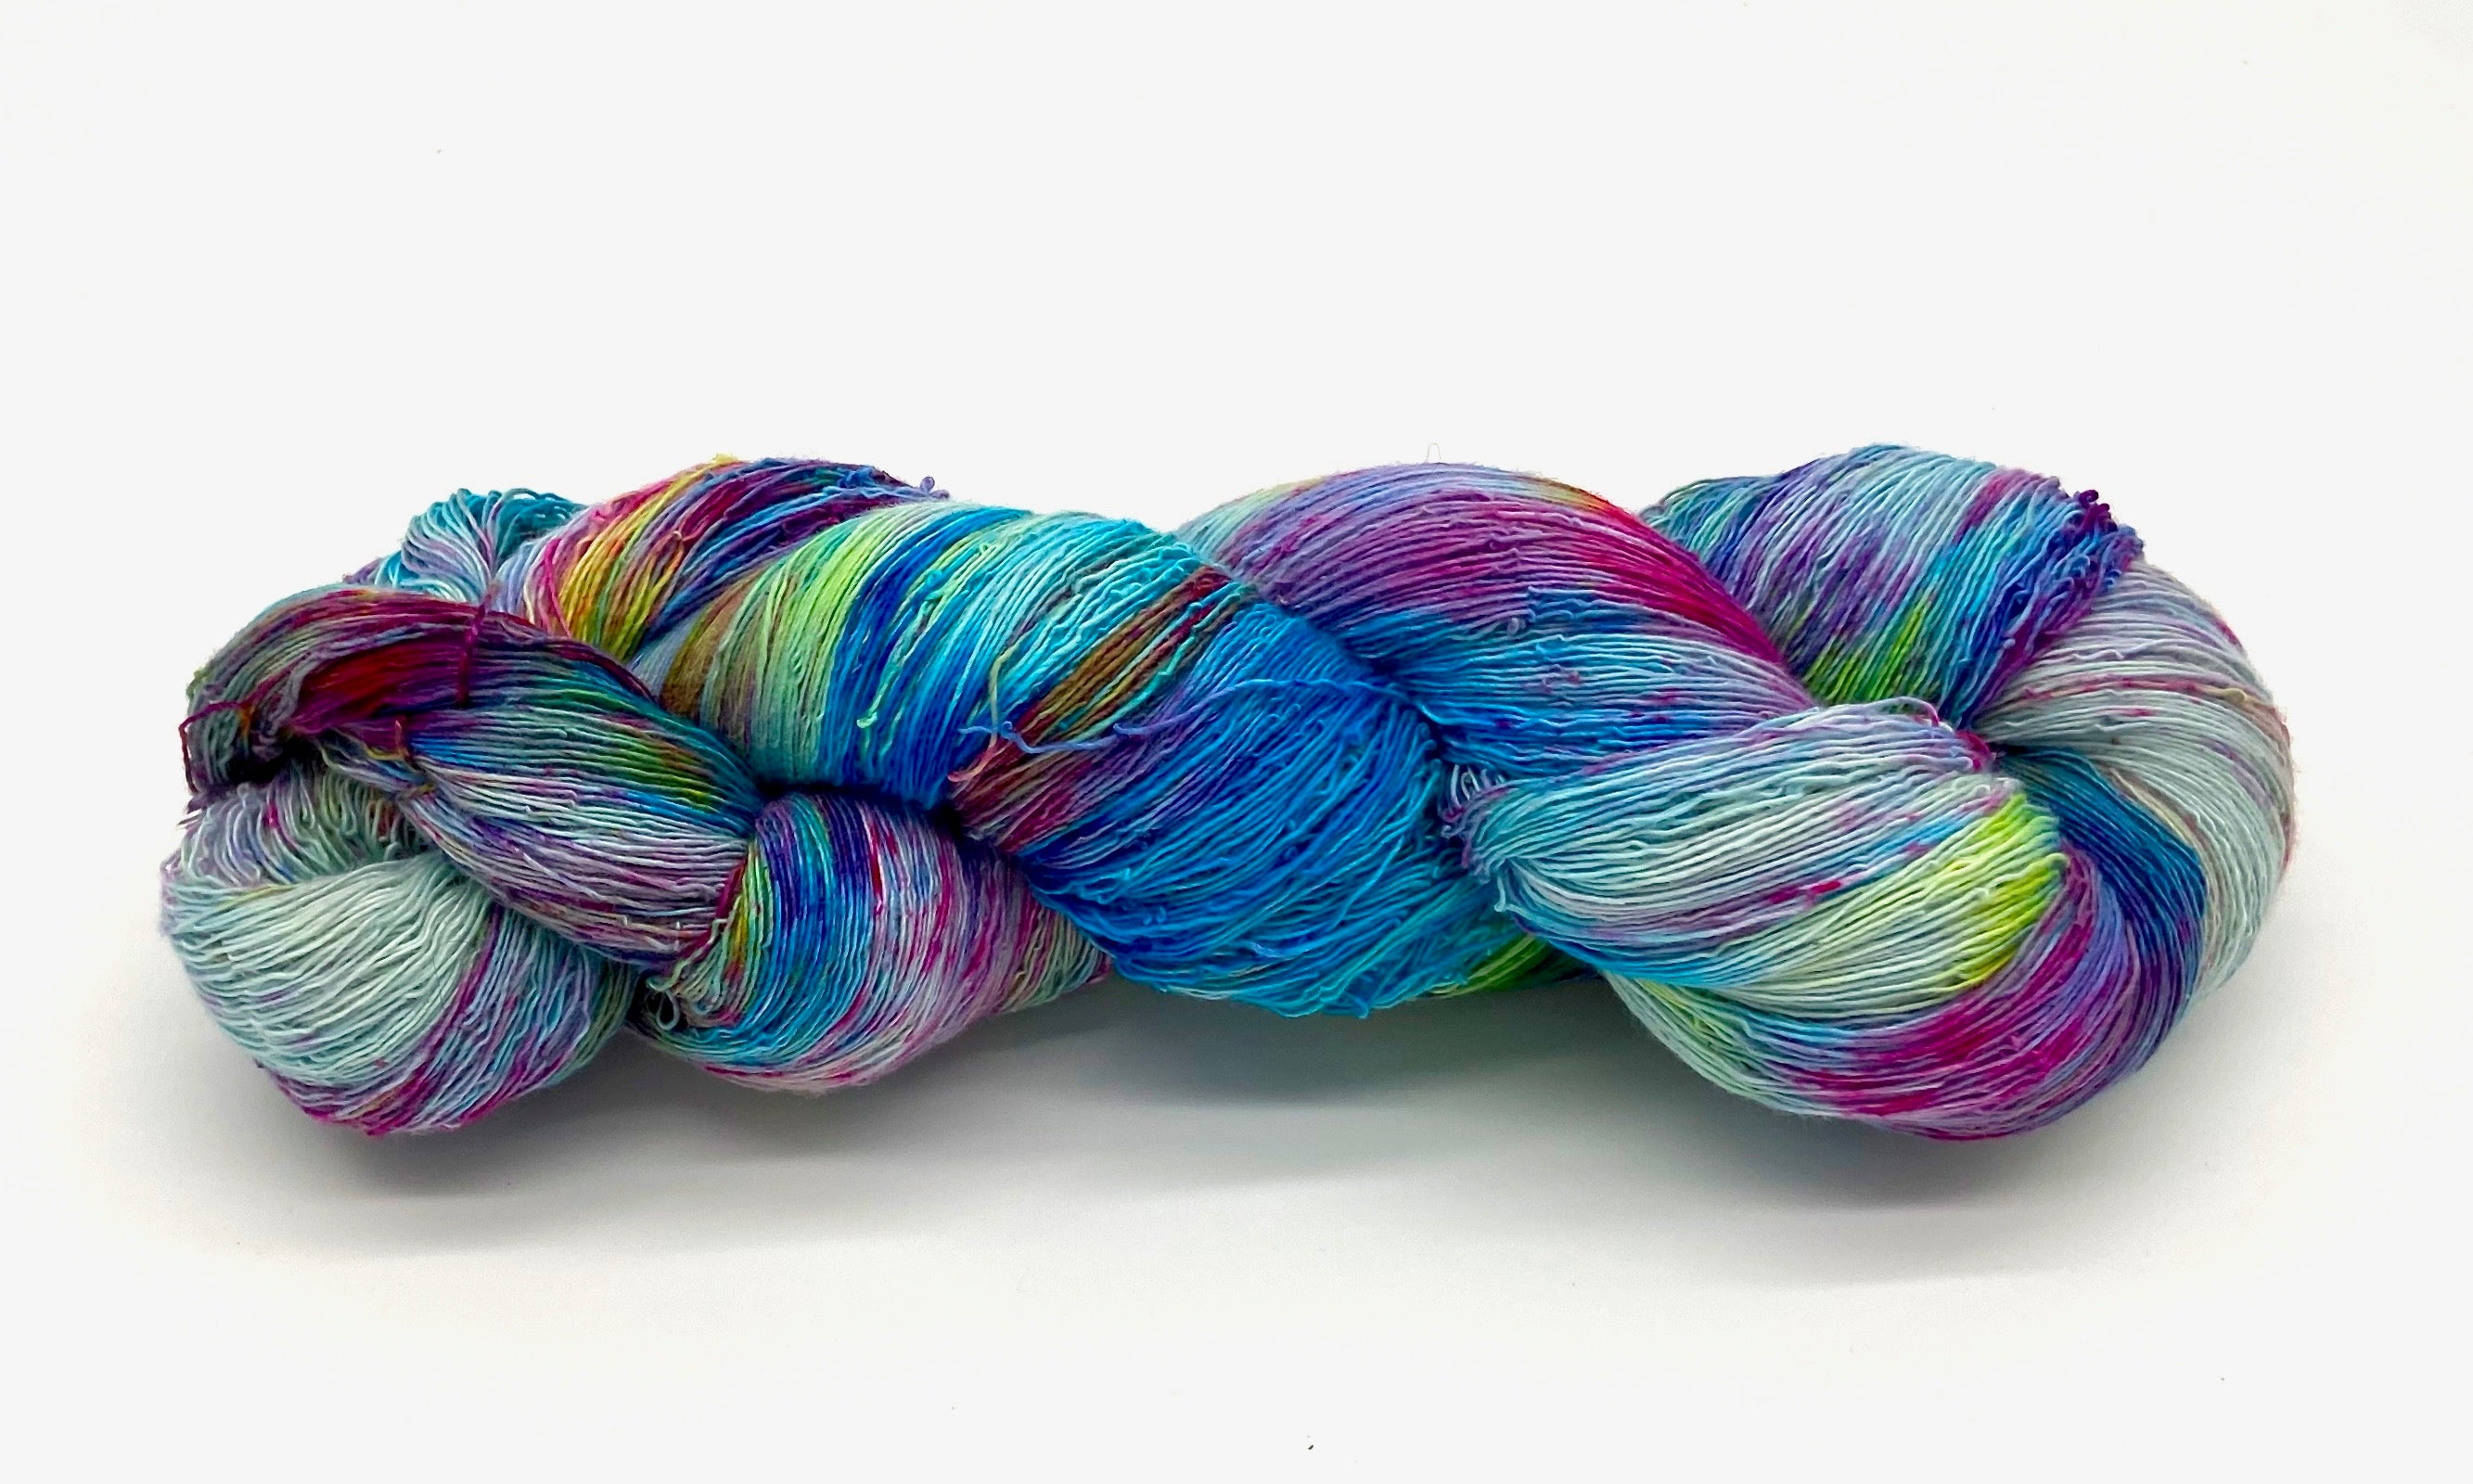 Hand Painted Organic Cotton Skeins - Sydney Sogol, Hand dyed Yarn, hand-painted-organic-cotton-skeins, hand dyed yarn, hand painted yarn